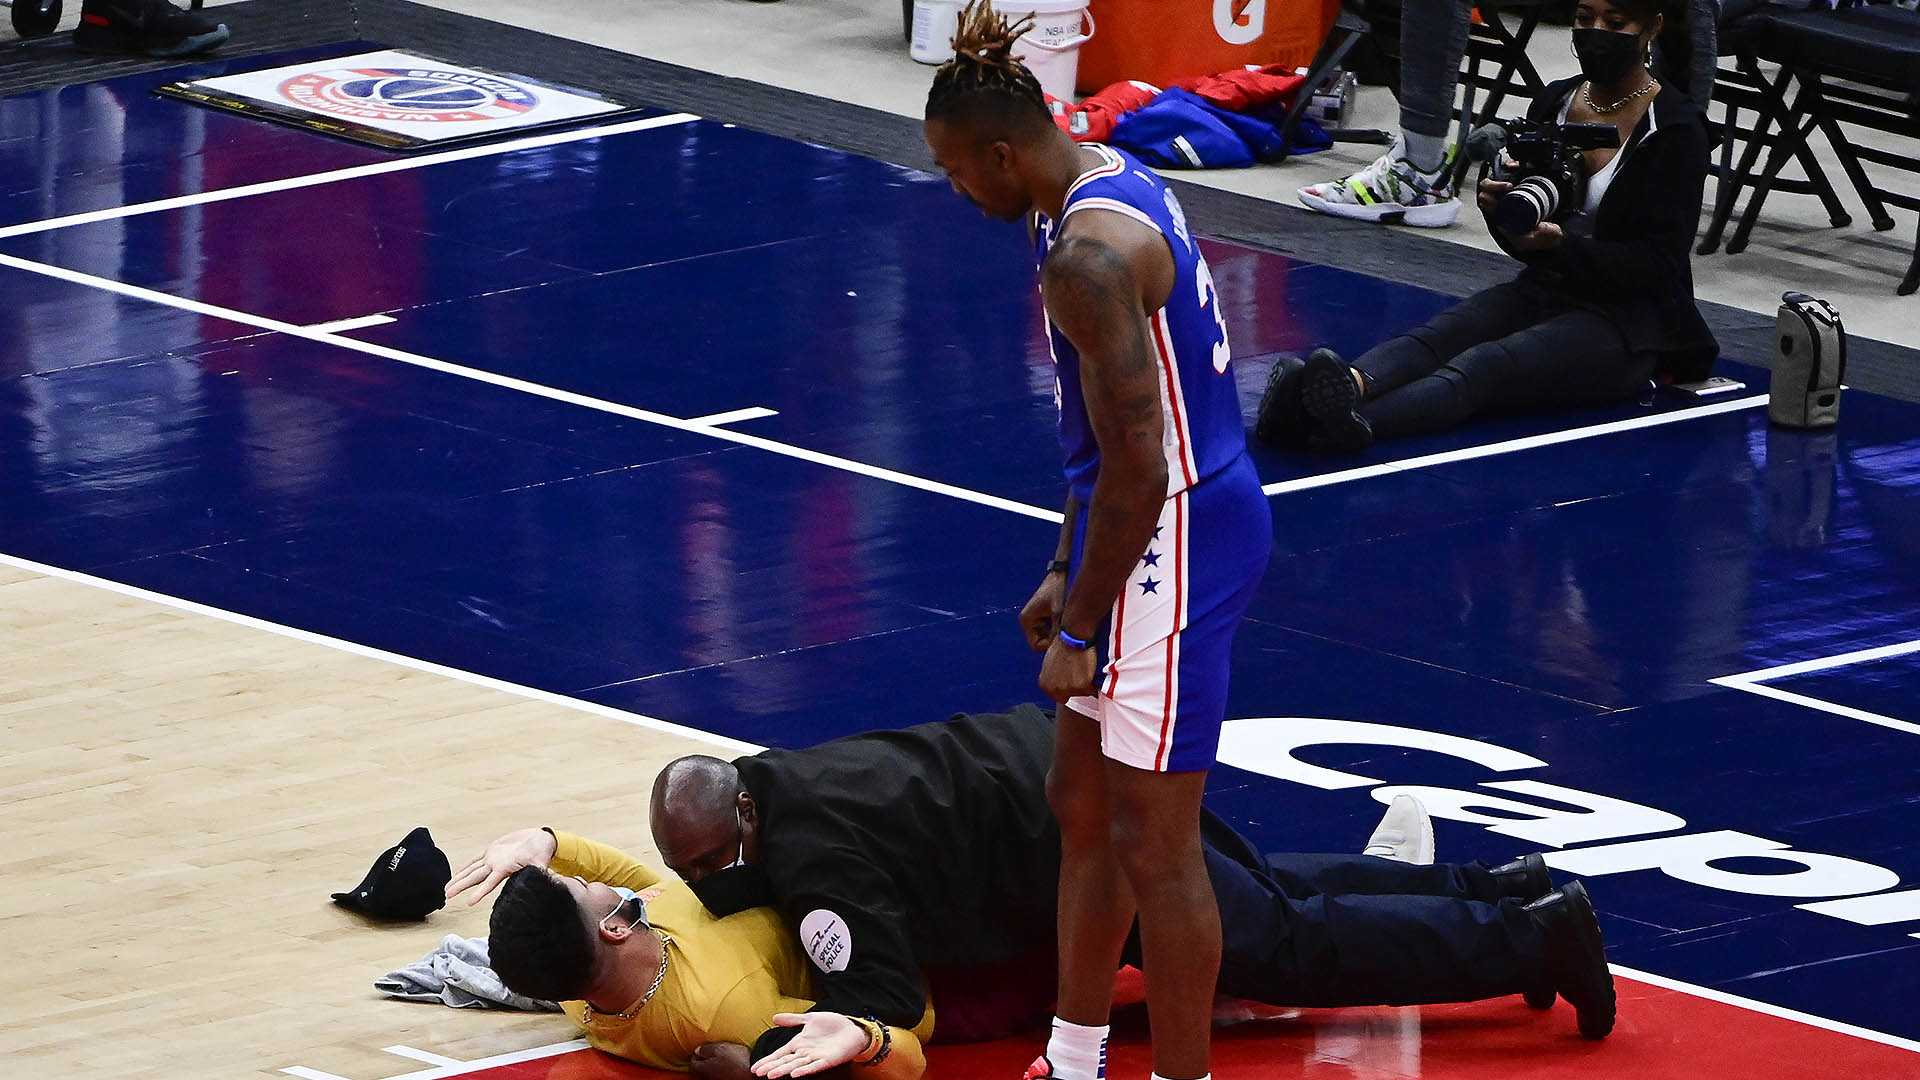 Fan runs on to court during Game 4 of 76ers-Wizards